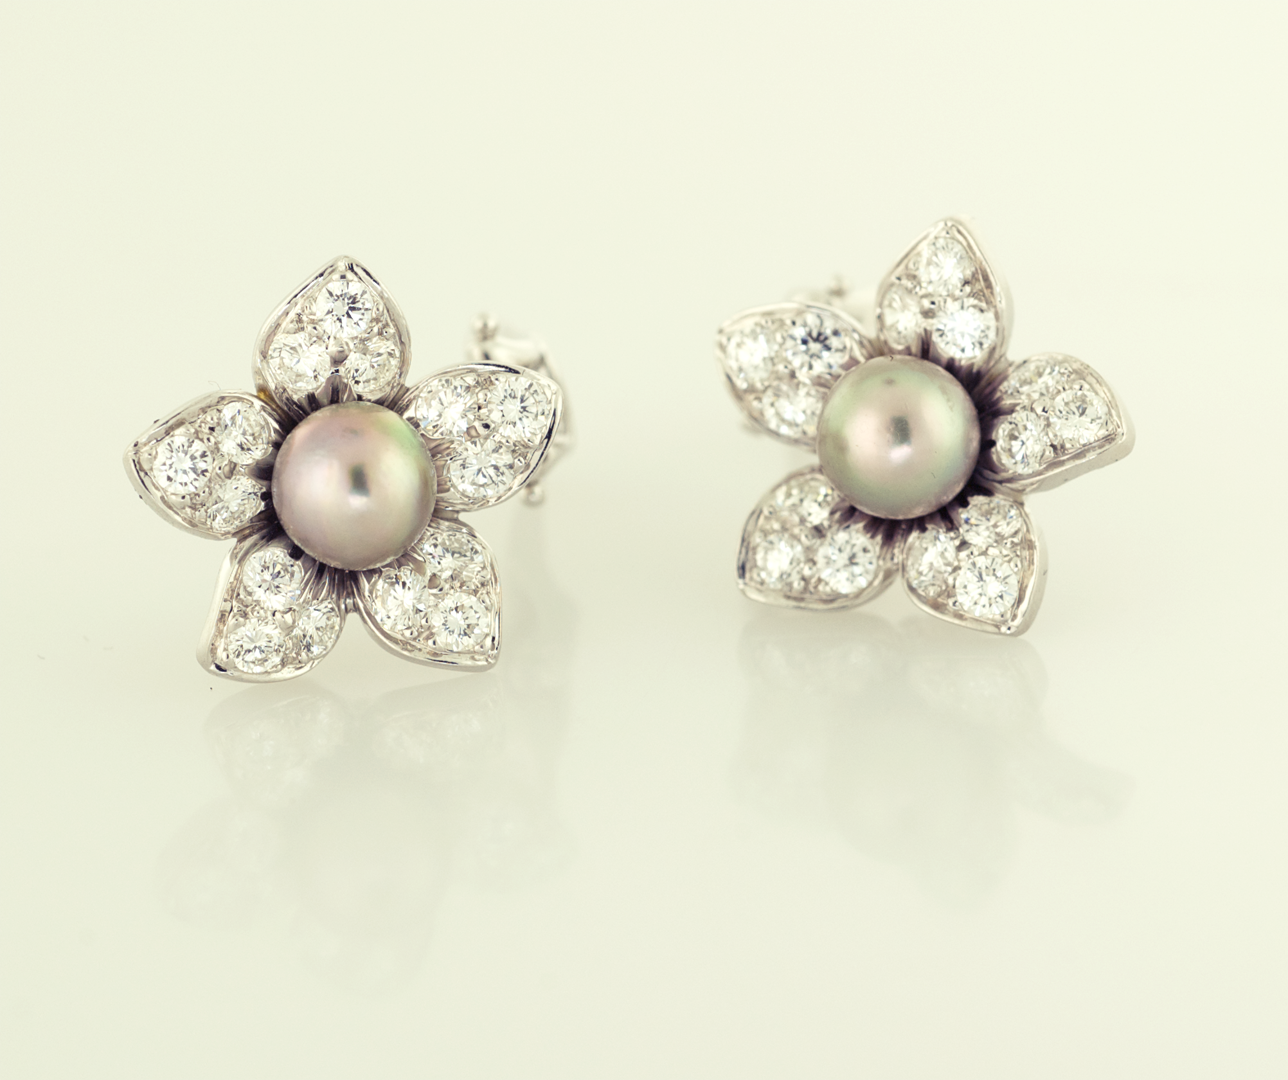 Diamond Pearl Earrings Designs Pearl And Diamond Earrings